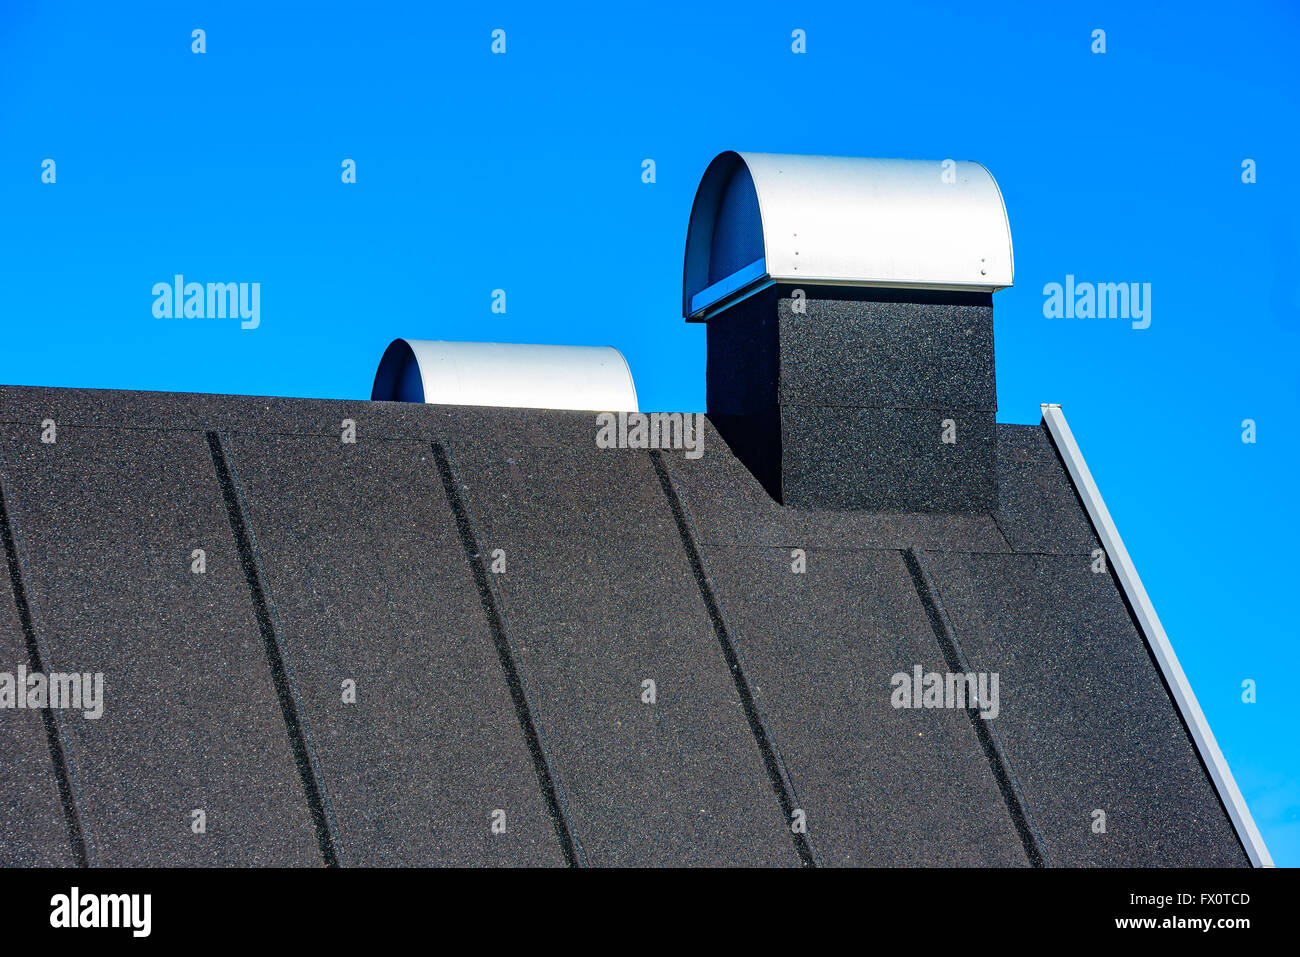 Felt Roofing Stock Photos & Felt Roofing Stock Images - Alamy